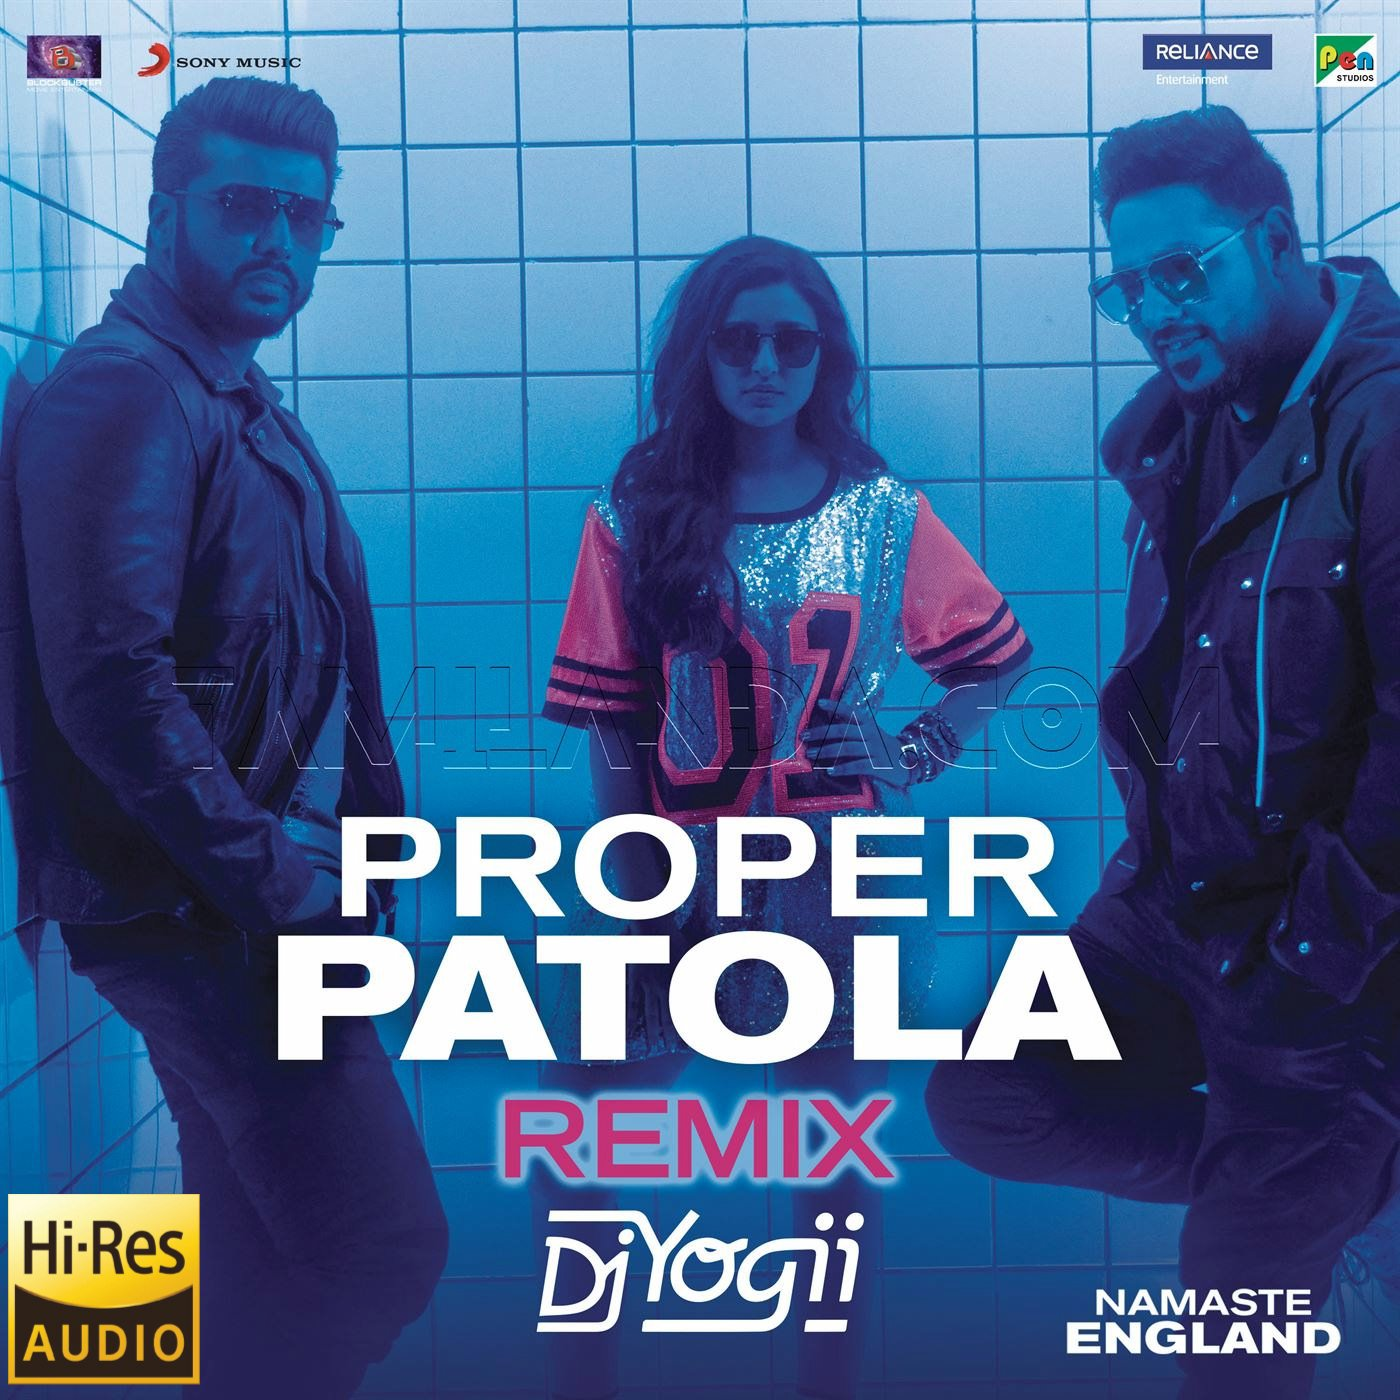 Proper Patola (Remix by DJ Yogii (From Namaste England)) – Single – (2018) (24 BIT)